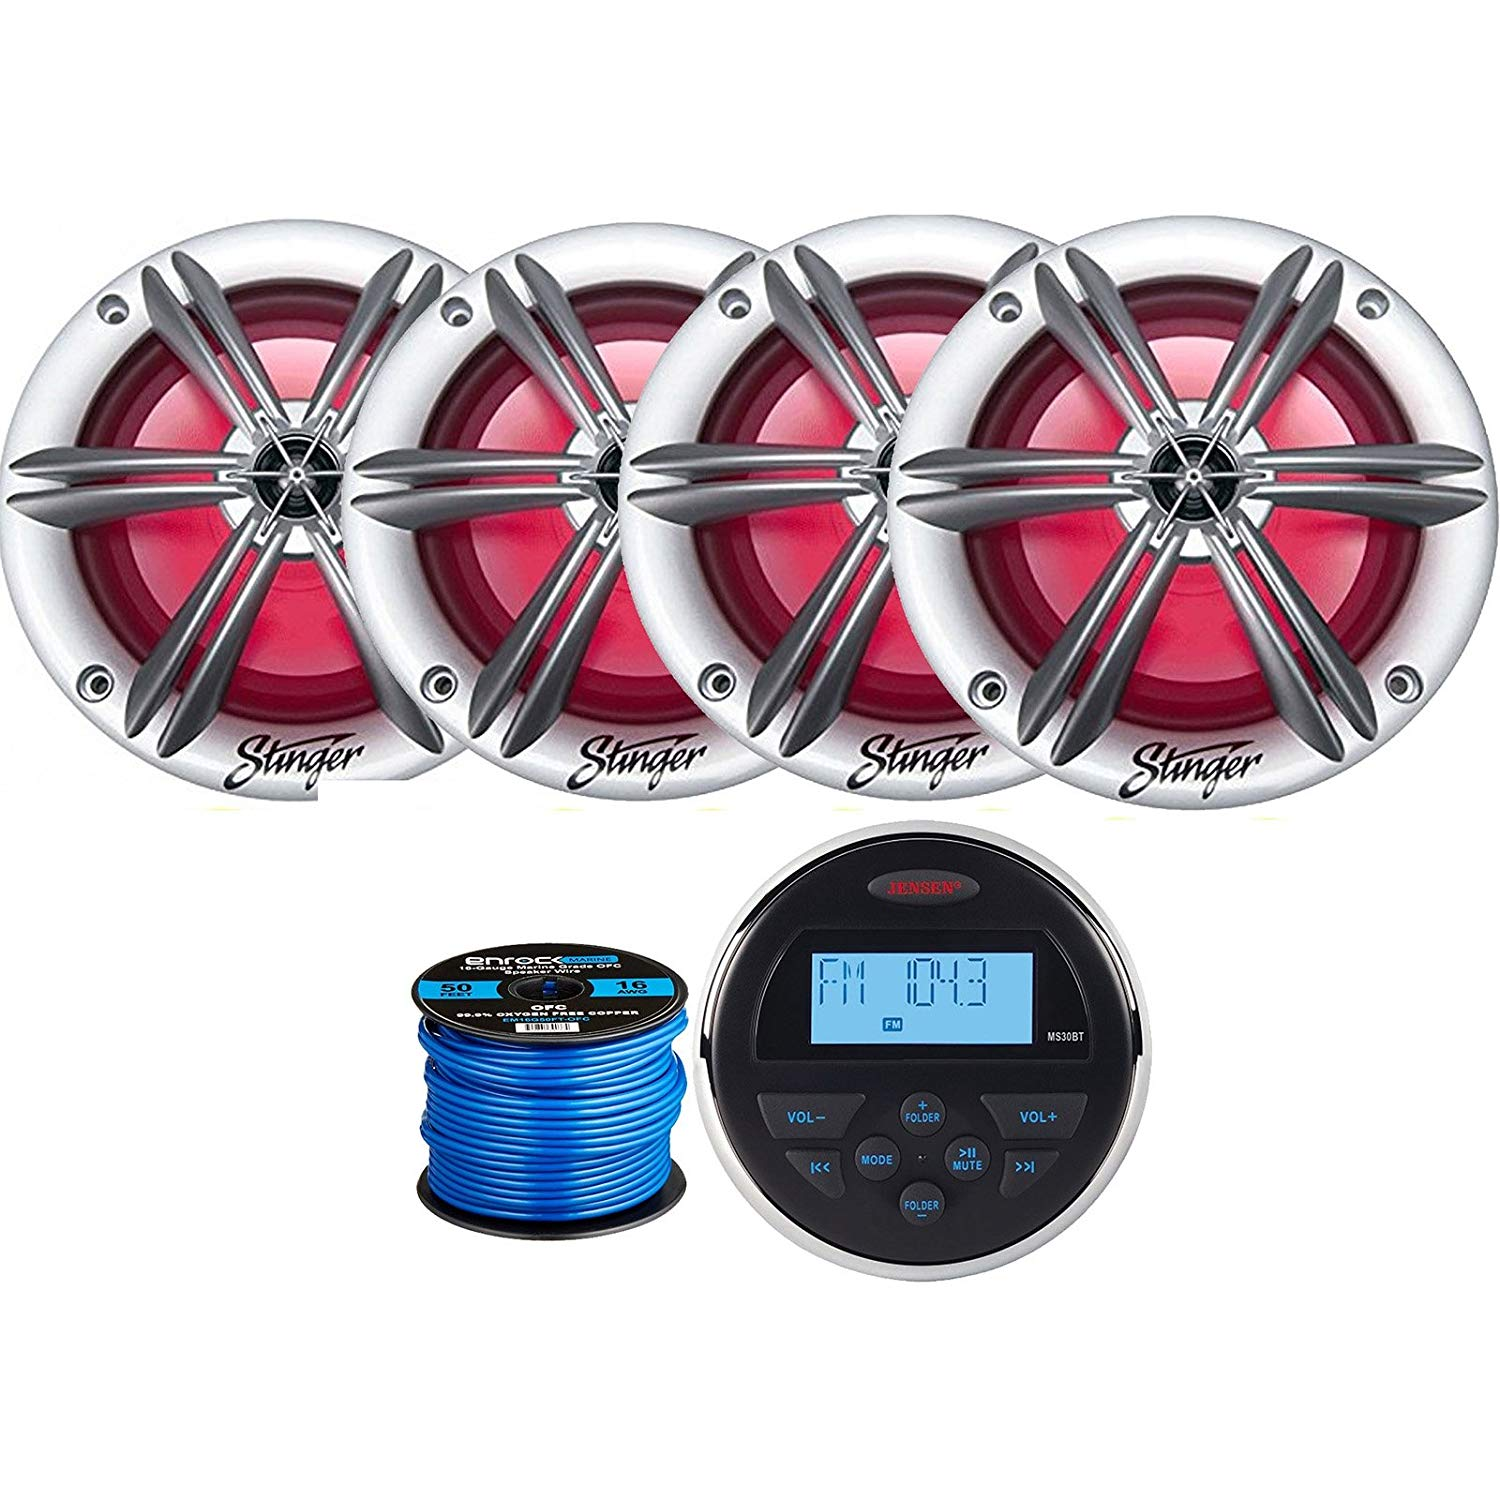 "Jensen MS-30BTR Mechless Compact Waterproof Stereo w/Bluetooth, 4 x Stinger PowerSports 6.5"" Marine Coaxial Speakers w/Multi-color RGB Lighting (Silver), Marine-Grade 50 Foot 16-Gauge Speaker Wire"